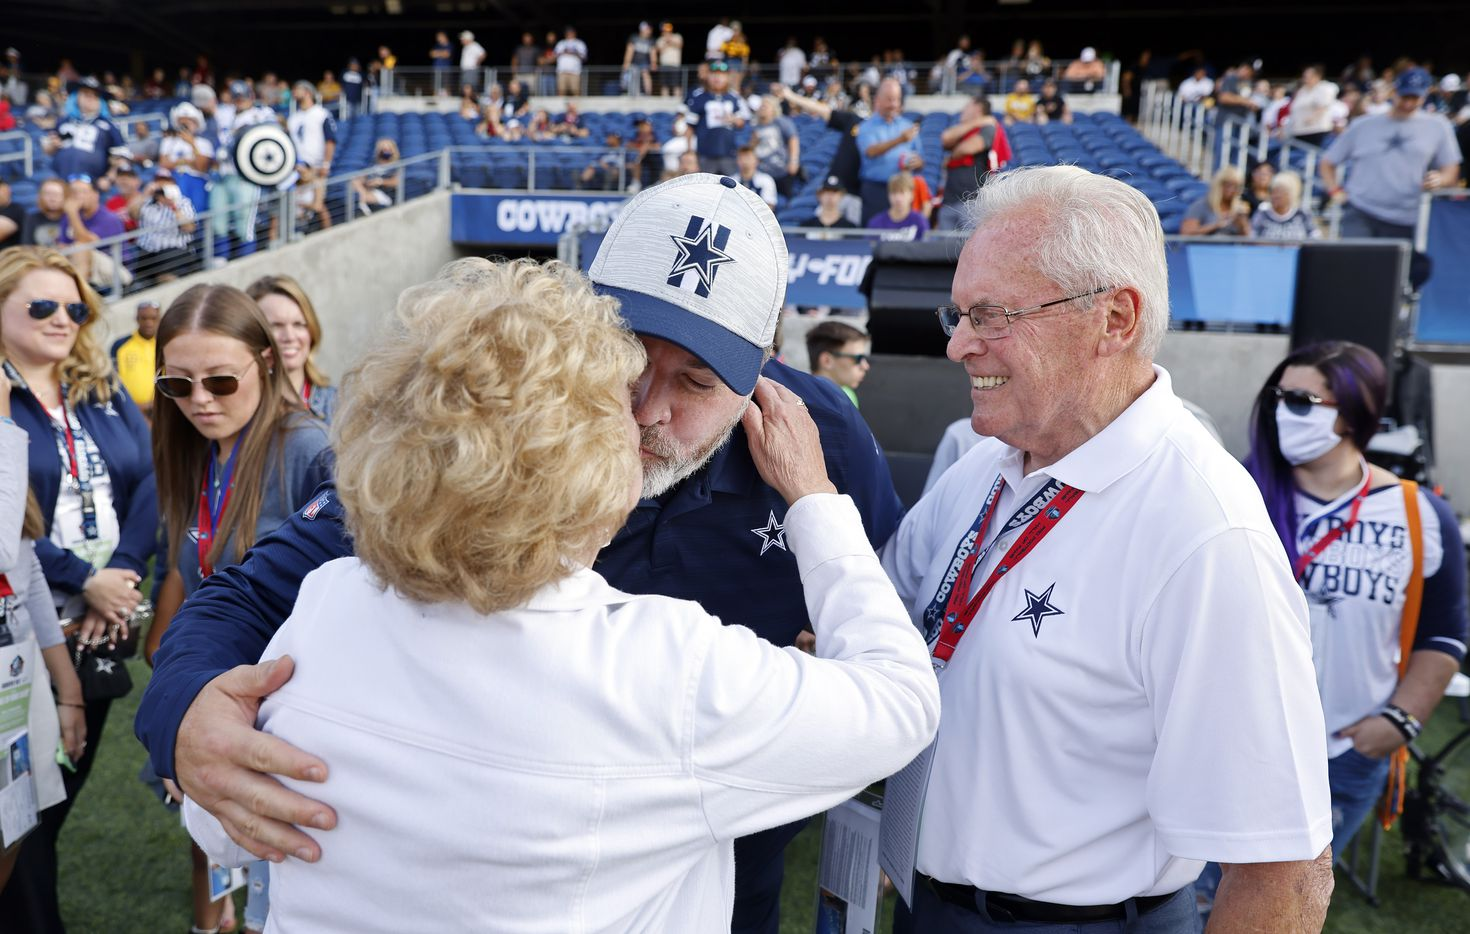 Cowboys head coach Mike McCarthy gives his mother Ellen McCarthy a kiss before their first preseason game against the Pittsburgh Steelers at Tom Benson Hall of Fame Stadium in Canton, Ohio, Thursday, August 5, 2021. Standing on the right is his father Joe McCarthy, both from the Greenfield neighborhood in Pittsburgh. (Tom Fox/The Dallas Morning News)